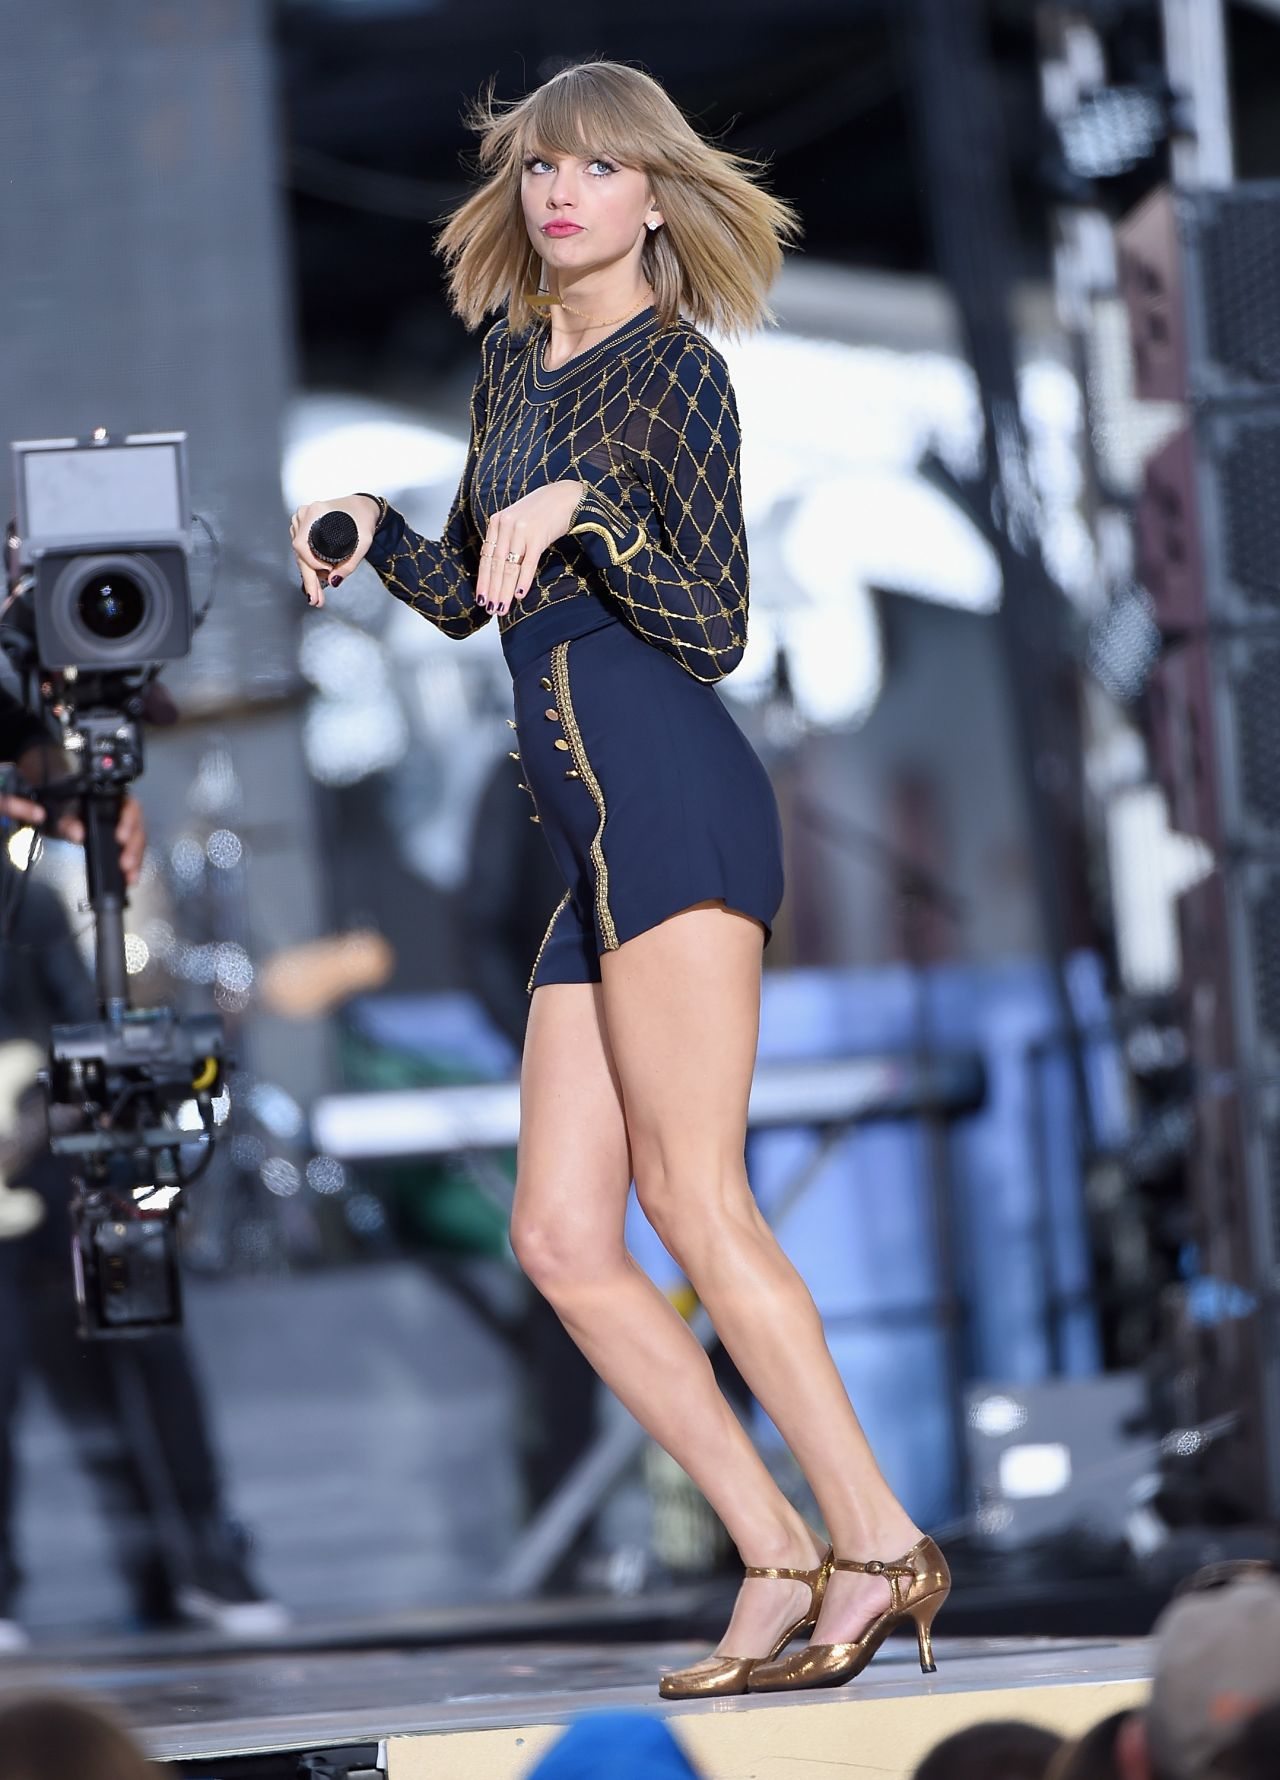 Taylor Swift Performs In Concert At Good Morning America -1345